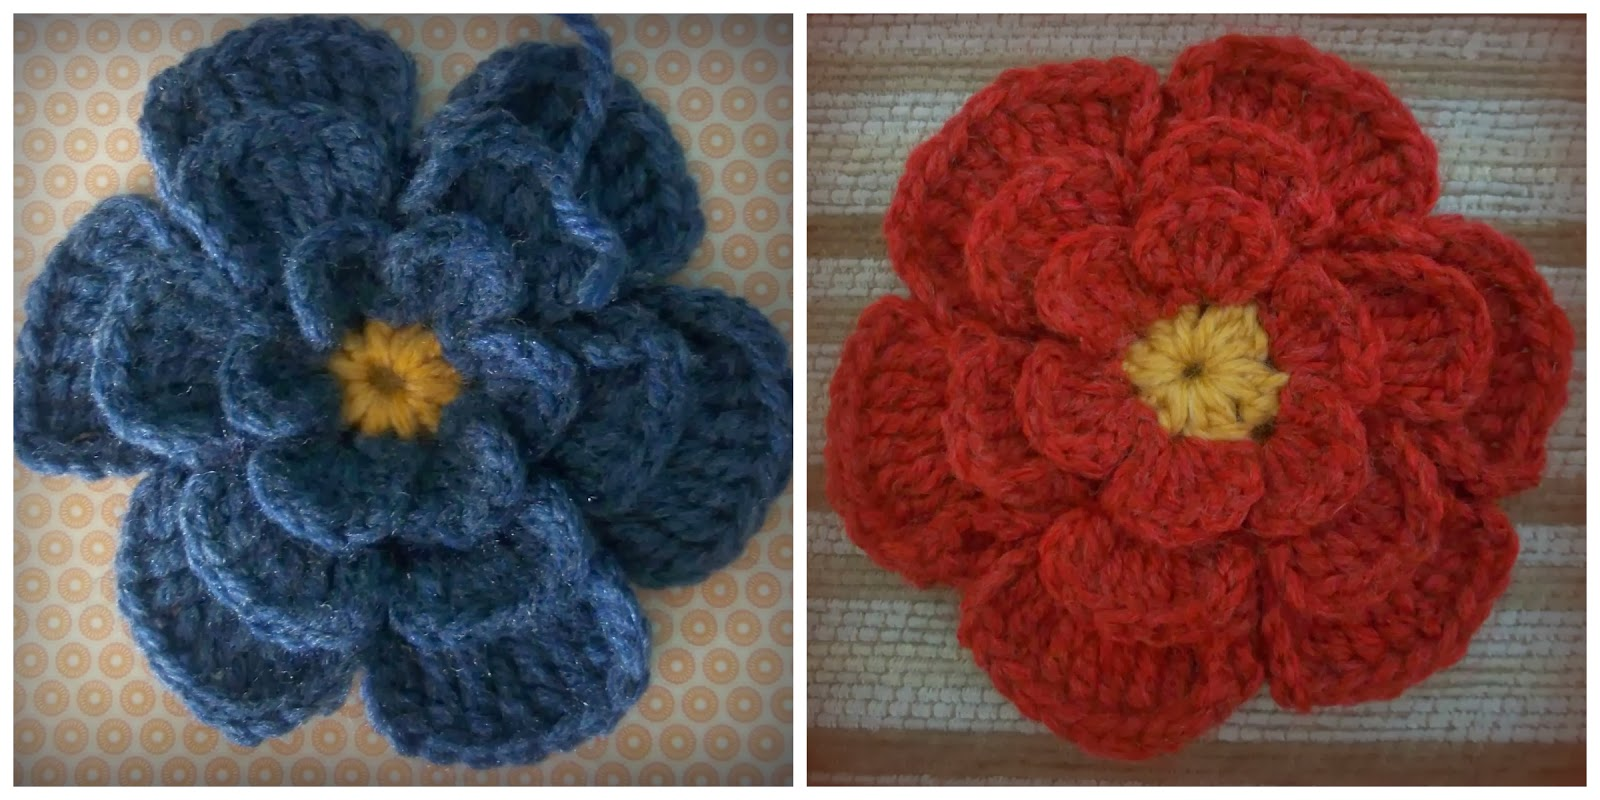 Medium Crochet Flower Pattern : Zooty Owls Crafty Blog: Big Flower Crochet Brooch: Pattern